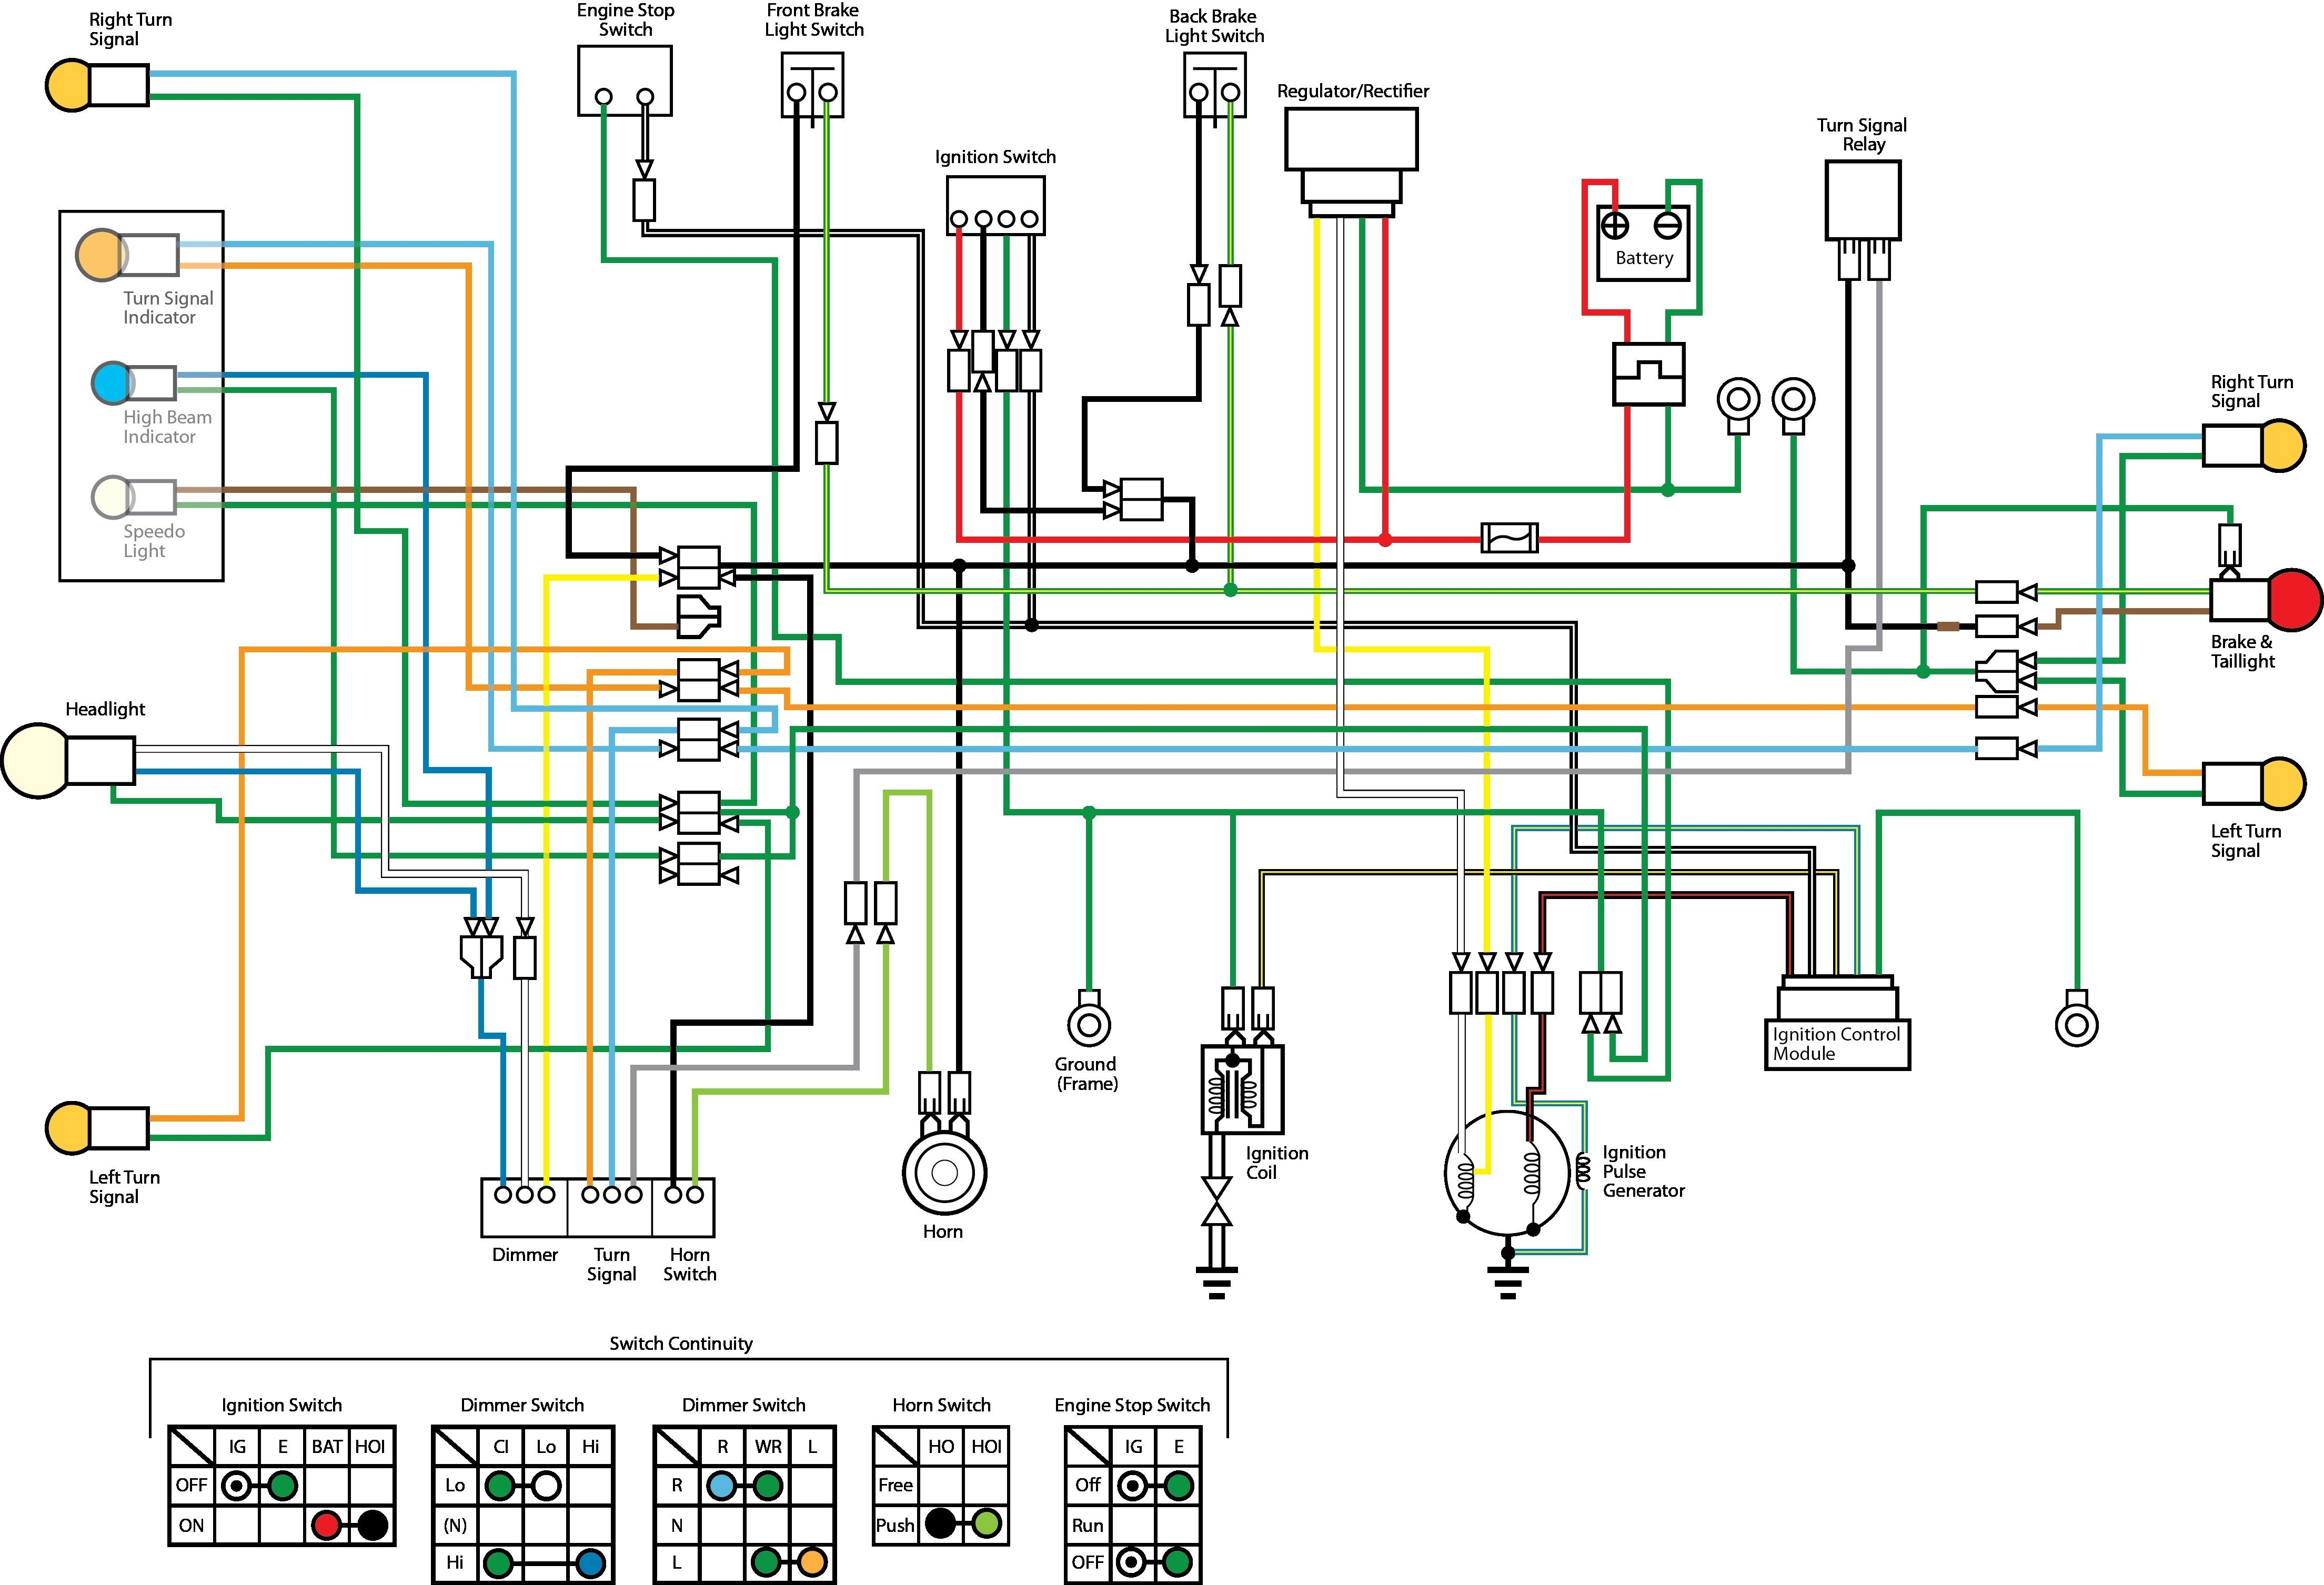 Automobile Engine Diagram Wiring Diagram Brake Light Switch Refrence Universal Motorcycle Of Automobile Engine Diagram